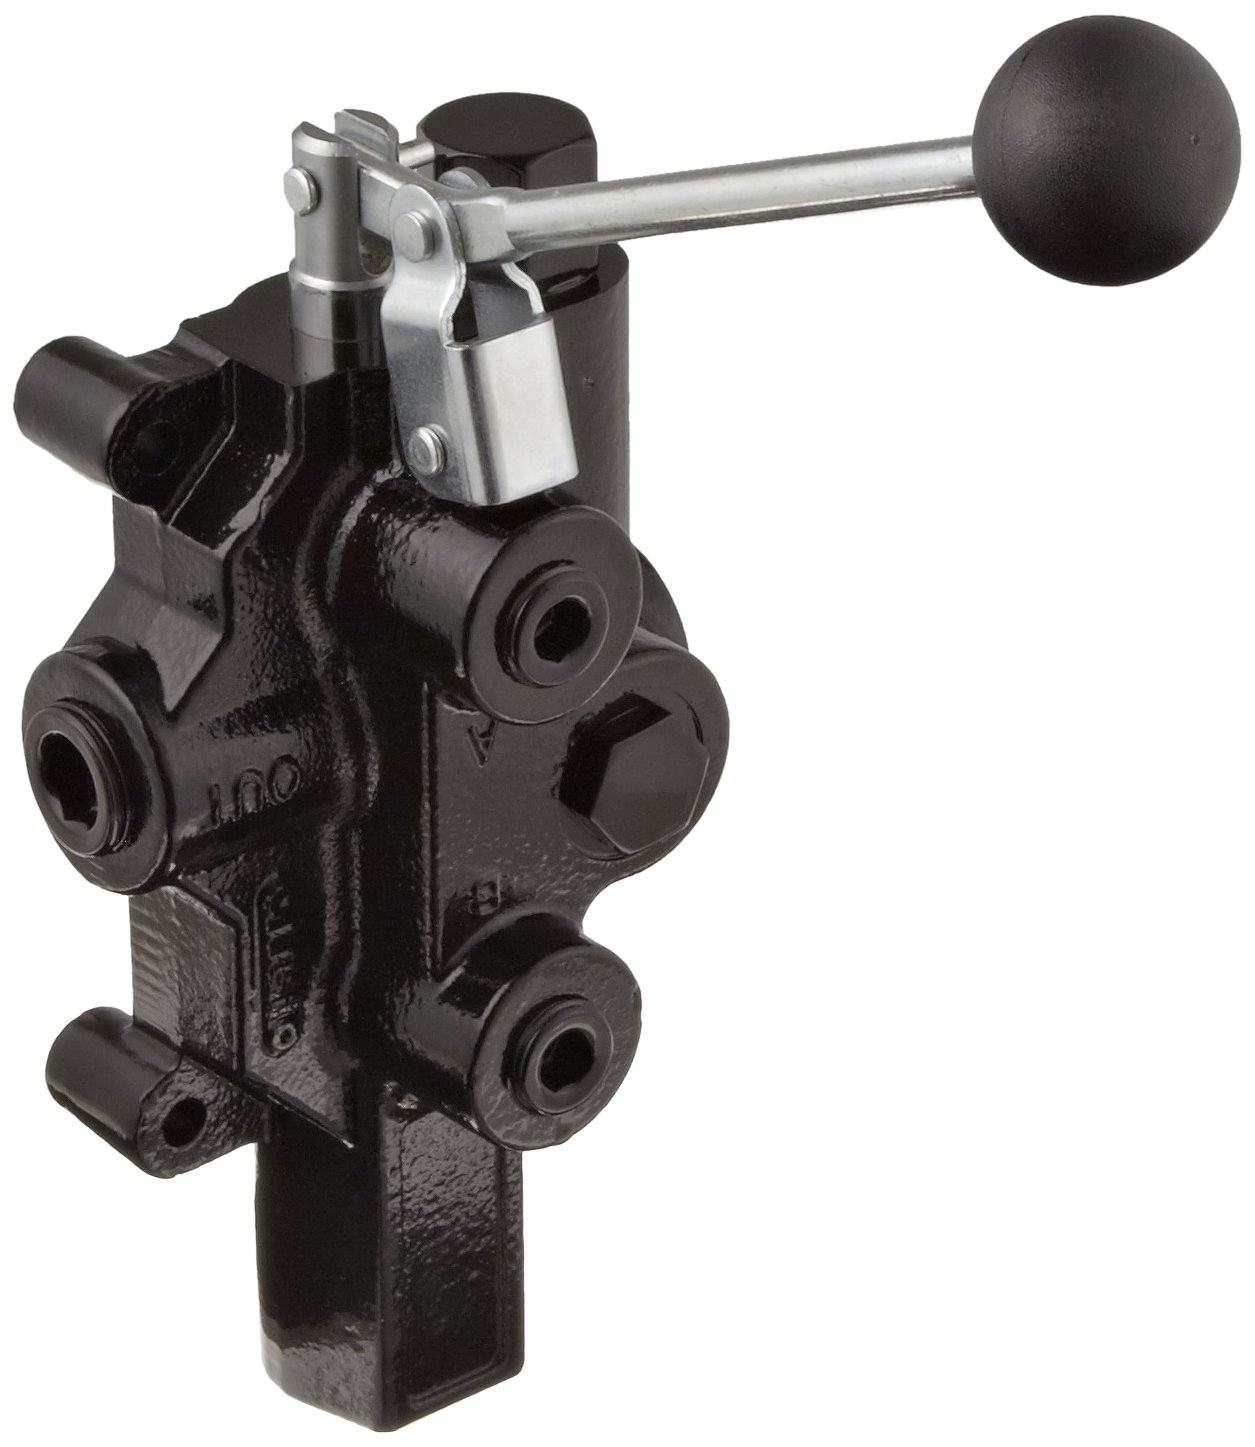 Prince RD-2575-T4-ESA1 Directional Control Valve, Logsplitter, 4 Ways, 3 Positions, Spring Center To Neutral, Cast Iron, 3000 psi, Lever Handle, 20 gpm, In/Out: 3/4'' NPTF, Work 1/2'' NPTF by Prince Manufacturing